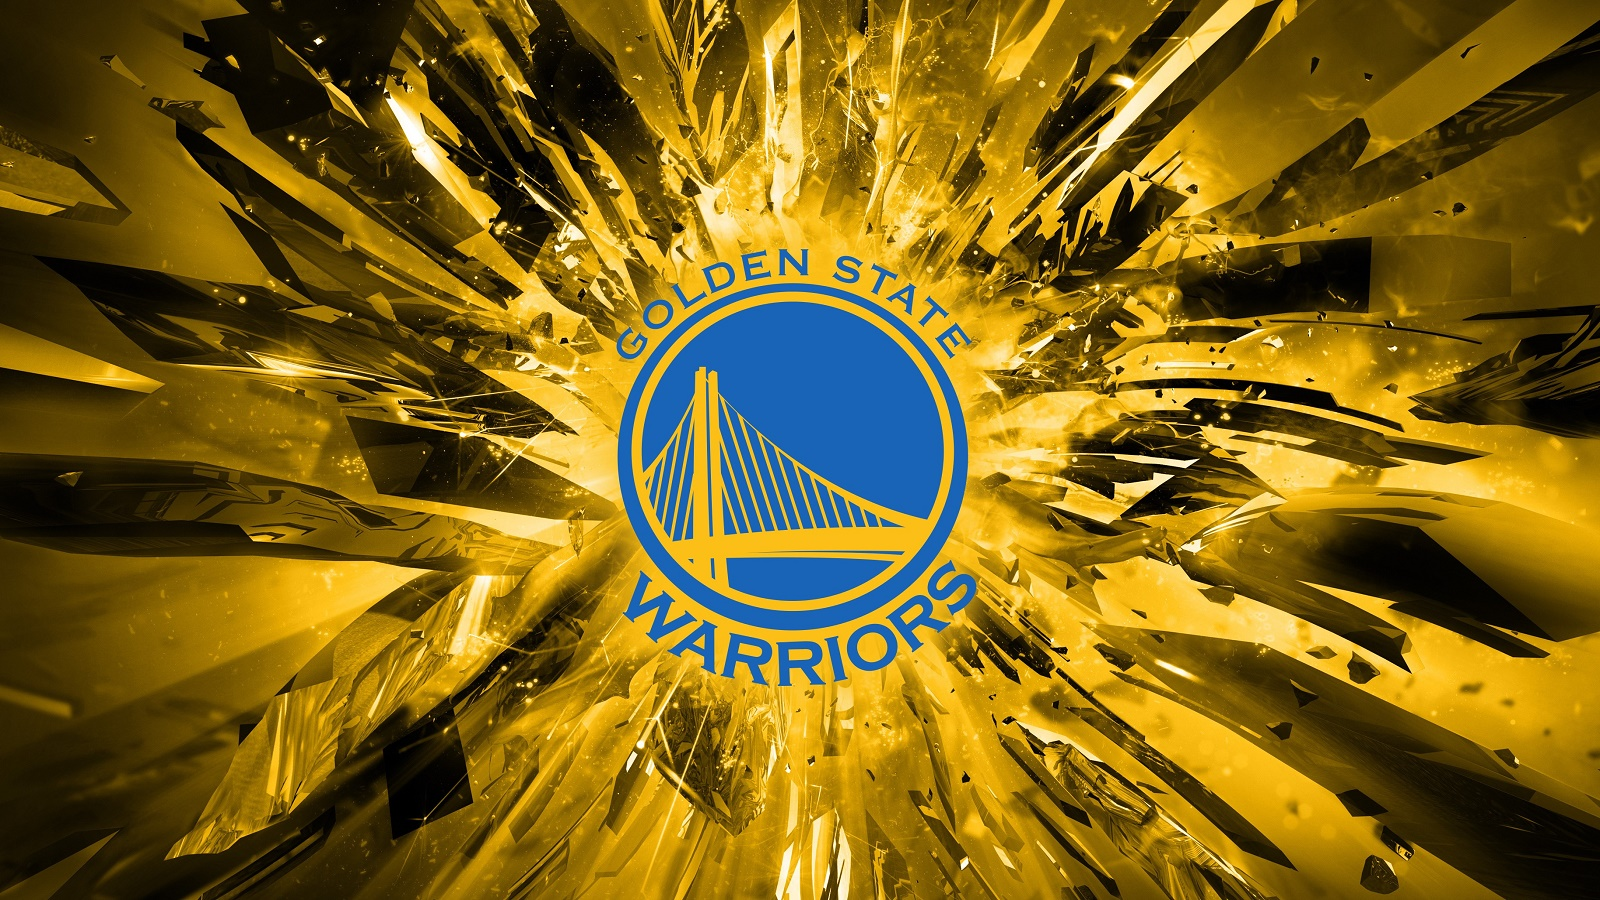 Connection Golden State Warriors Discount Tickets